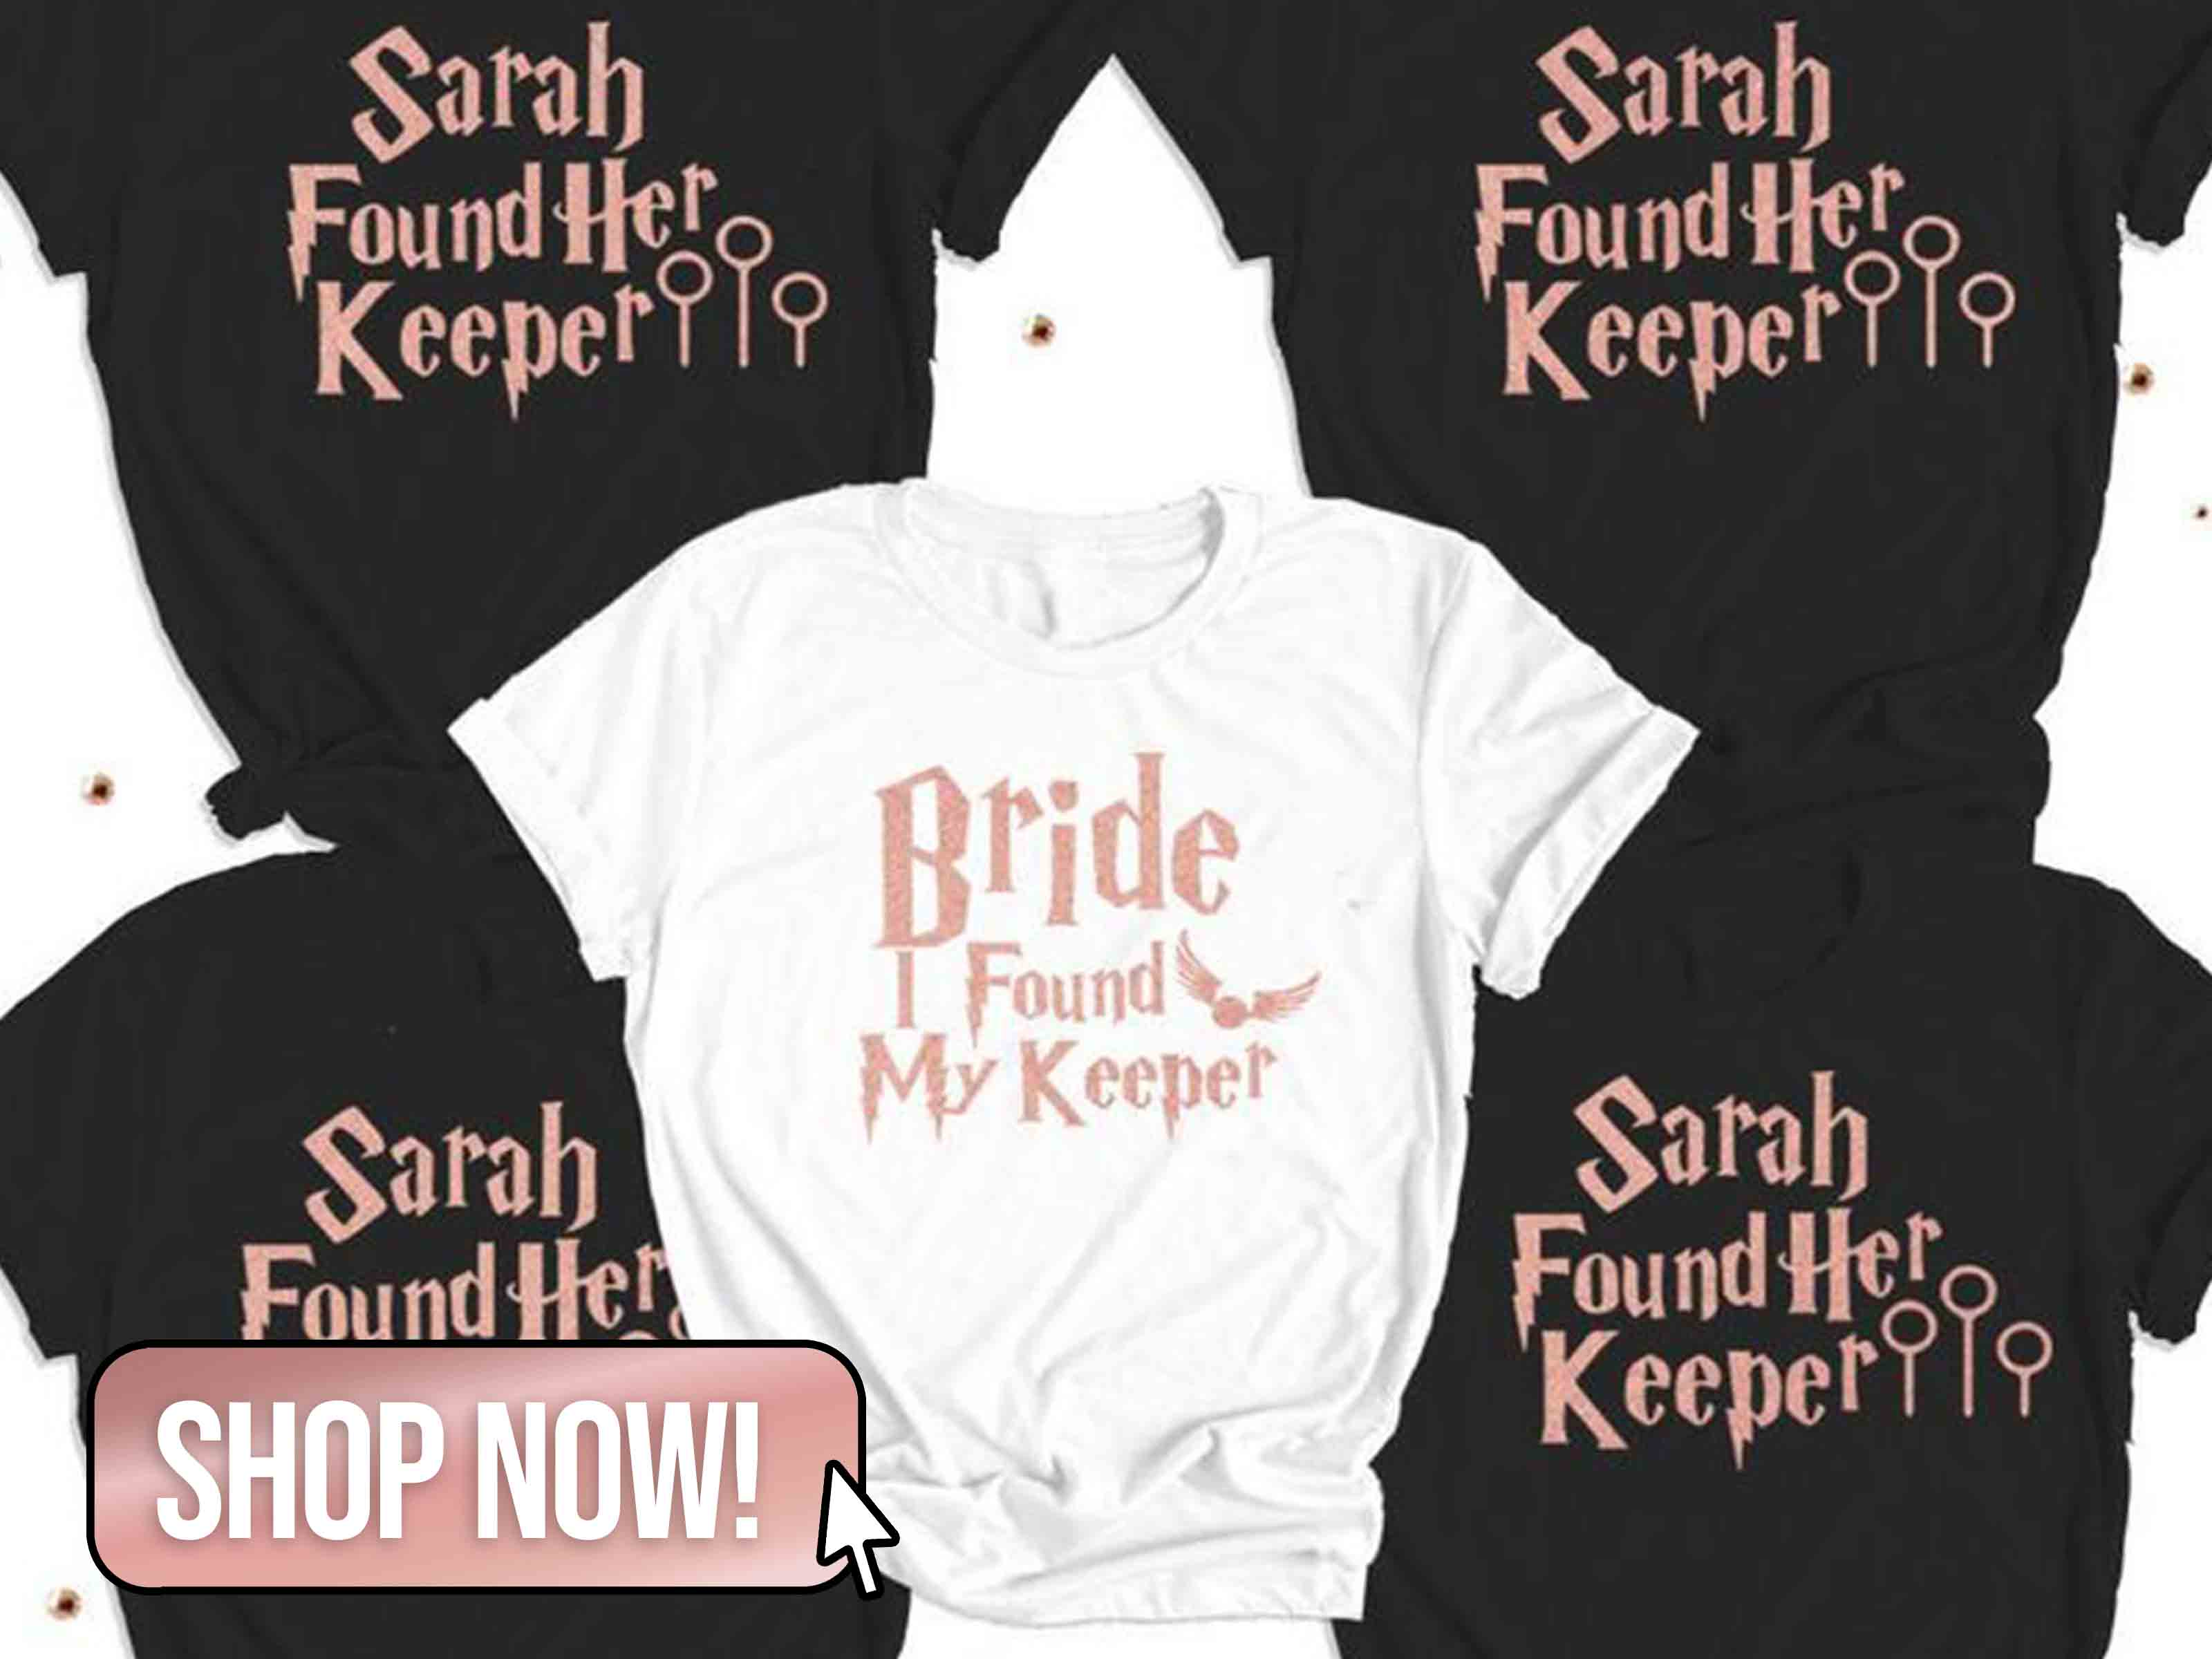 She Found Her Keeper Bridal Shirts